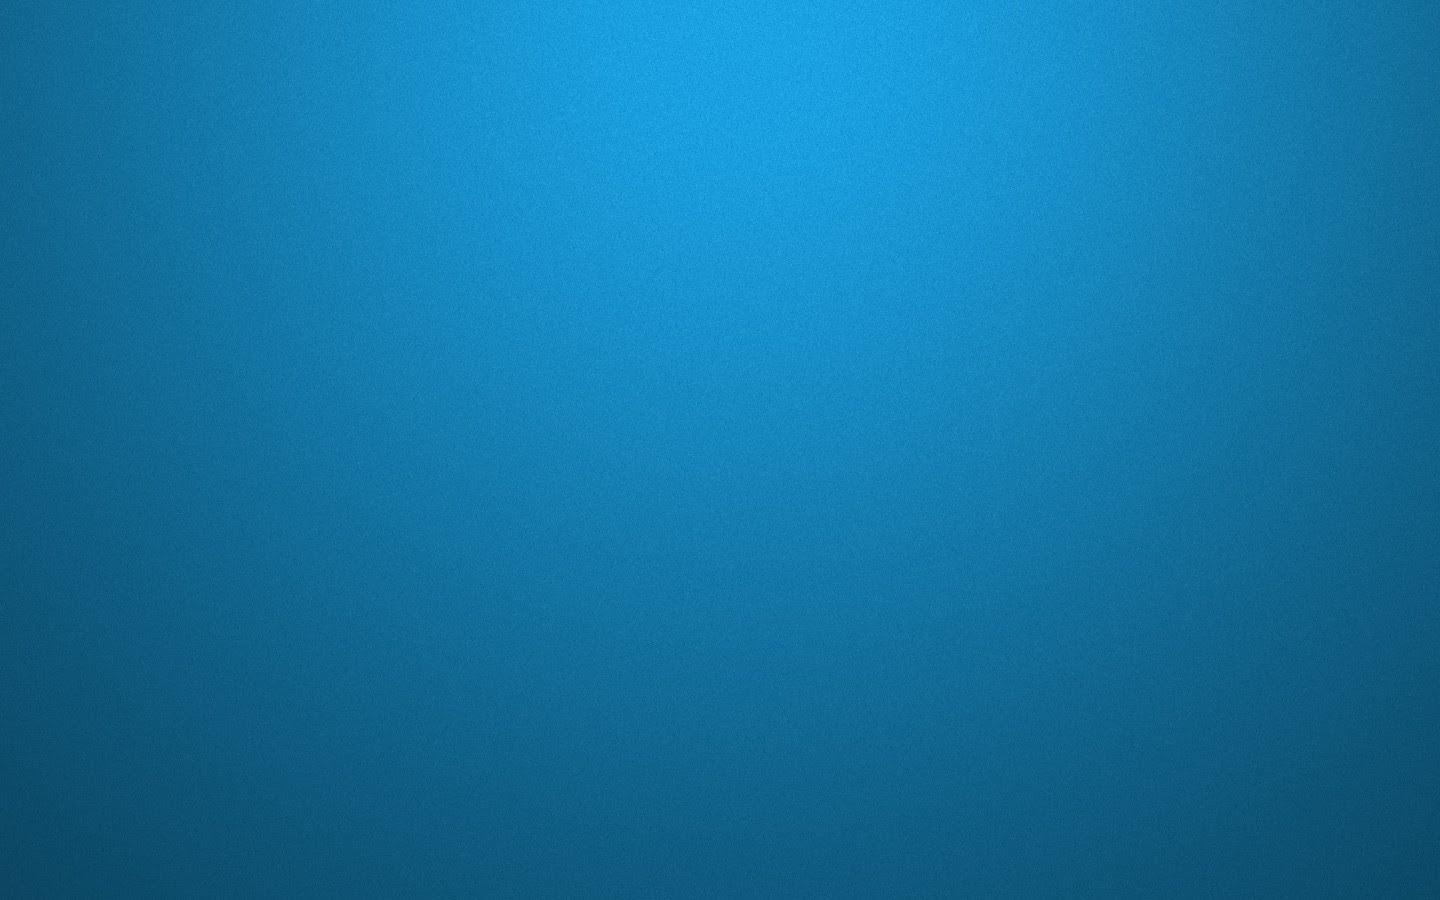 photoshop free plain backgrounds best image background